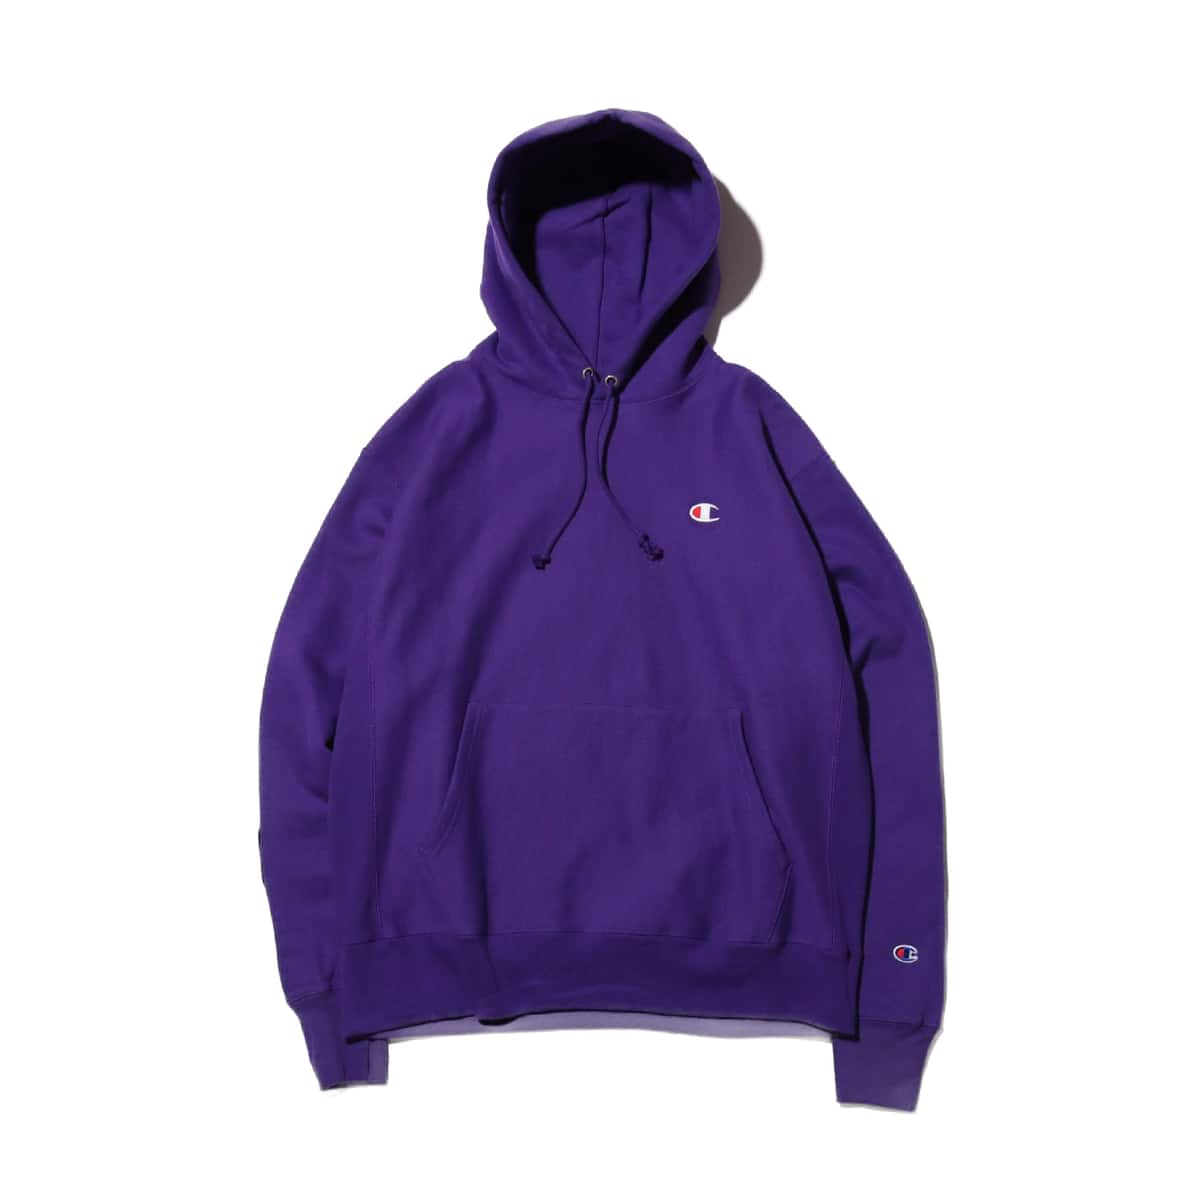 REMAKE HOODIE by 太田夢莉 PURPLE 19HO-S_photo_large